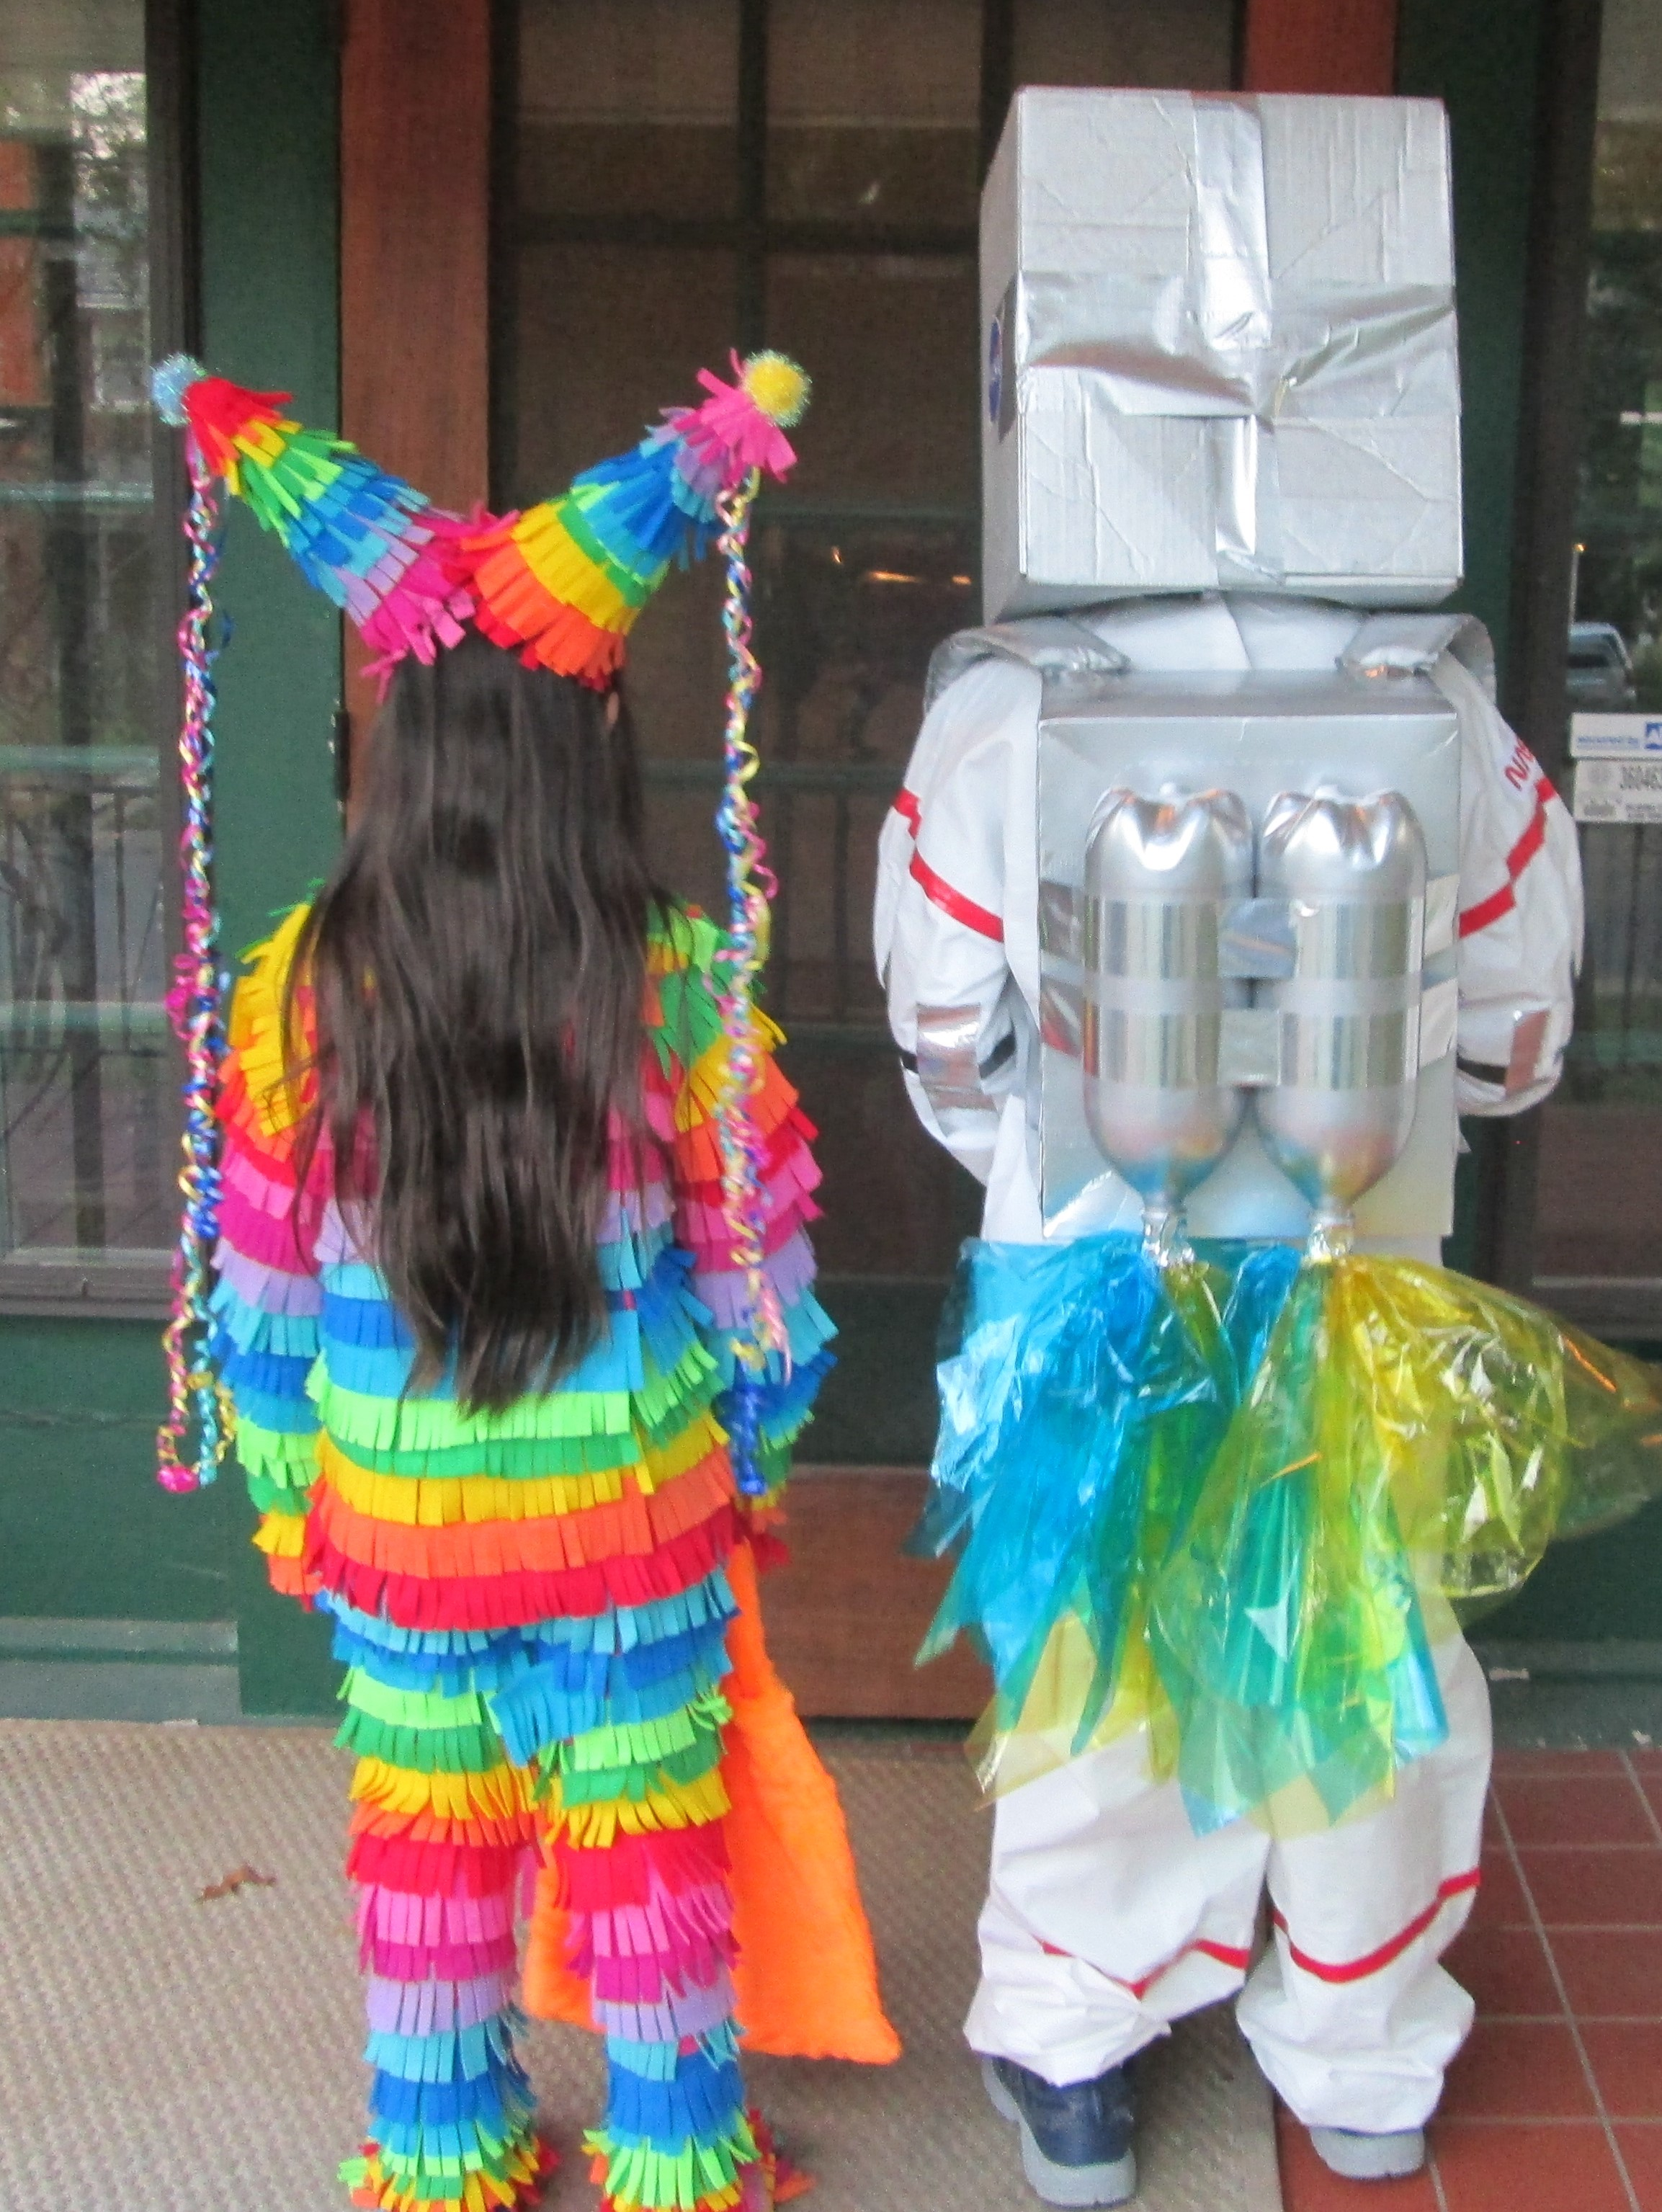 How to make a jet pack for an astronaut costume